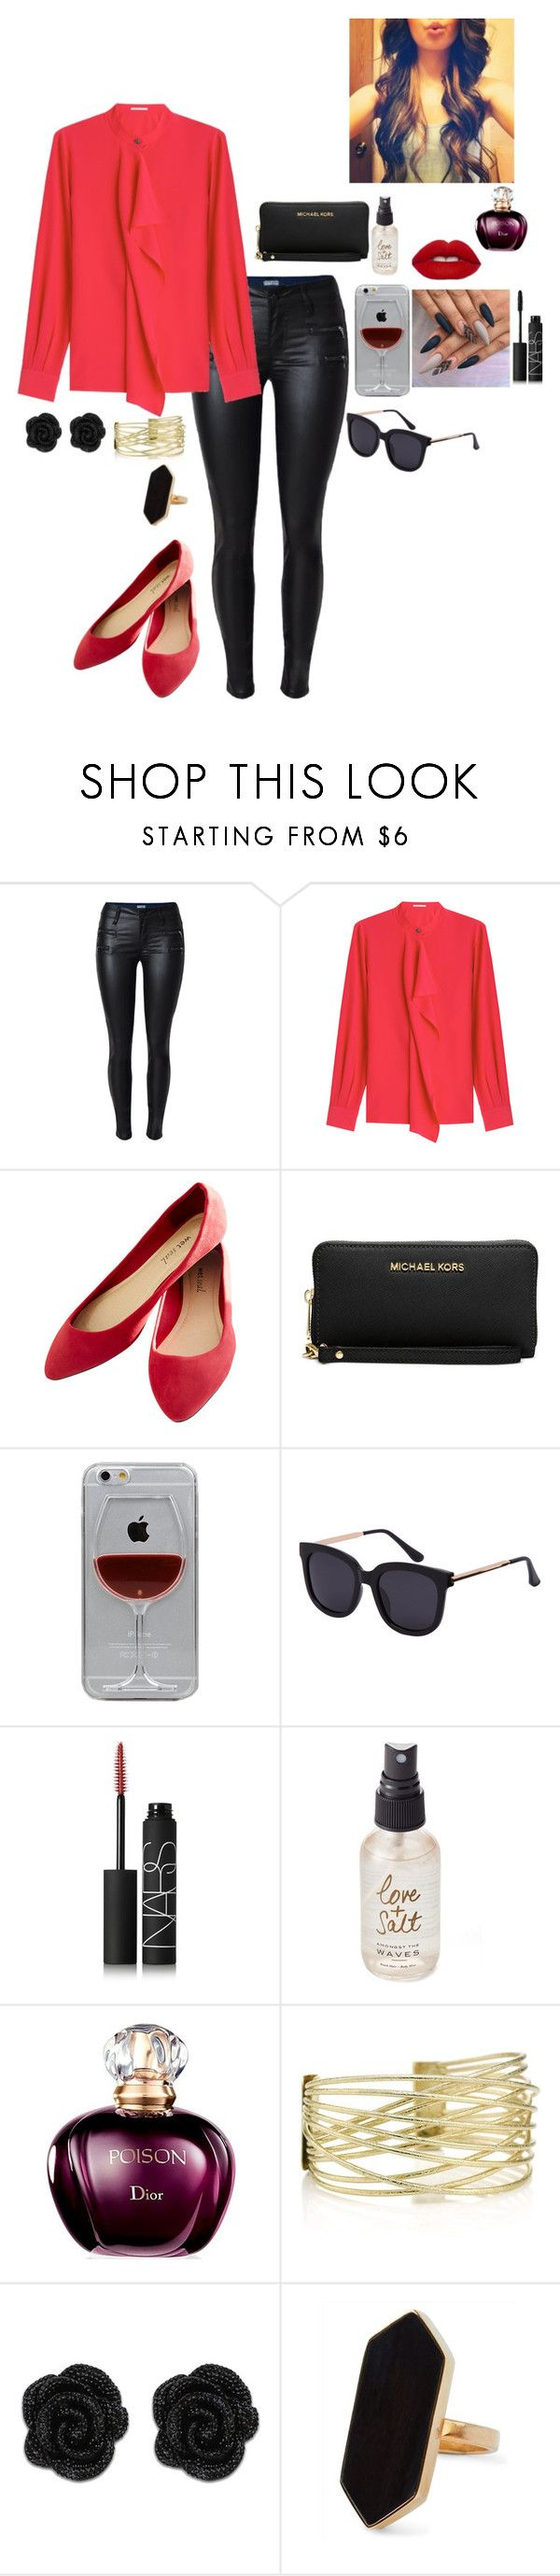 """classy"" by emilyxcourtney ❤ liked on Polyvore featuring beauty, Agnona, Wet Seal, Michael Kors, Reyes, NARS Cosmetics, Olivine and Jaeger"